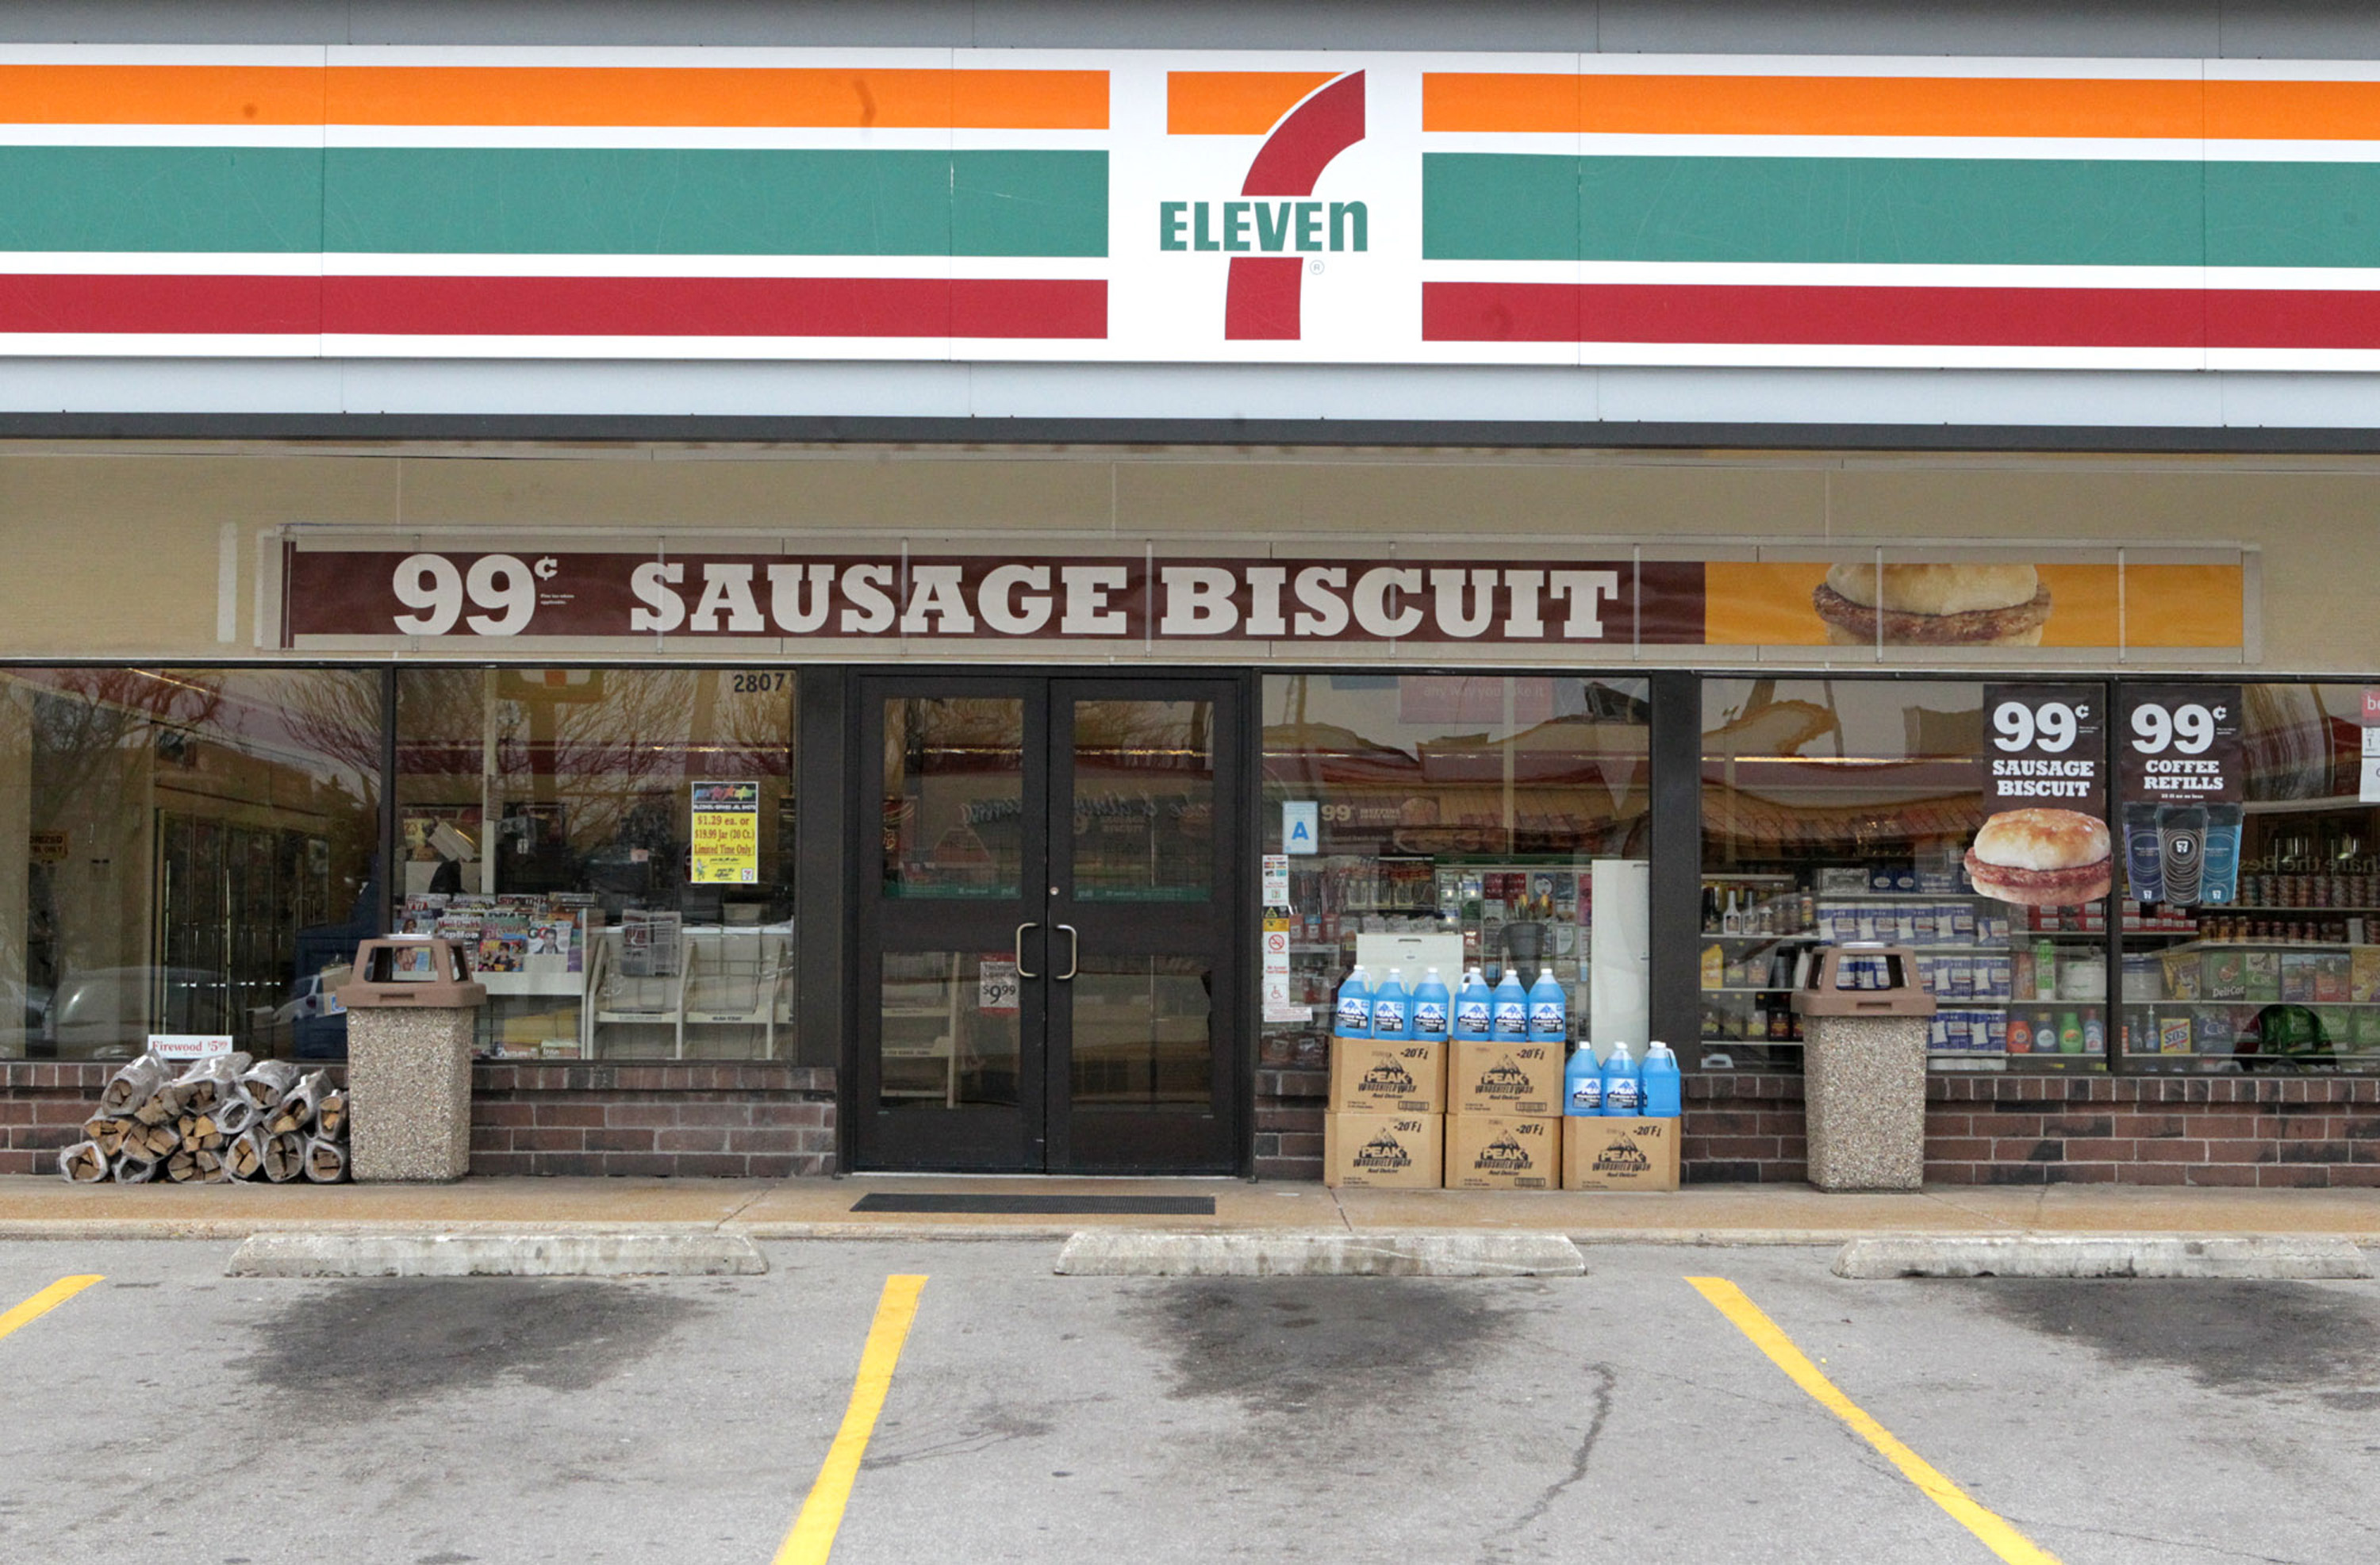 7 Eleven Offering Customers Healthy Fresh Food Choices Chain Betting On Yogurt Salads For